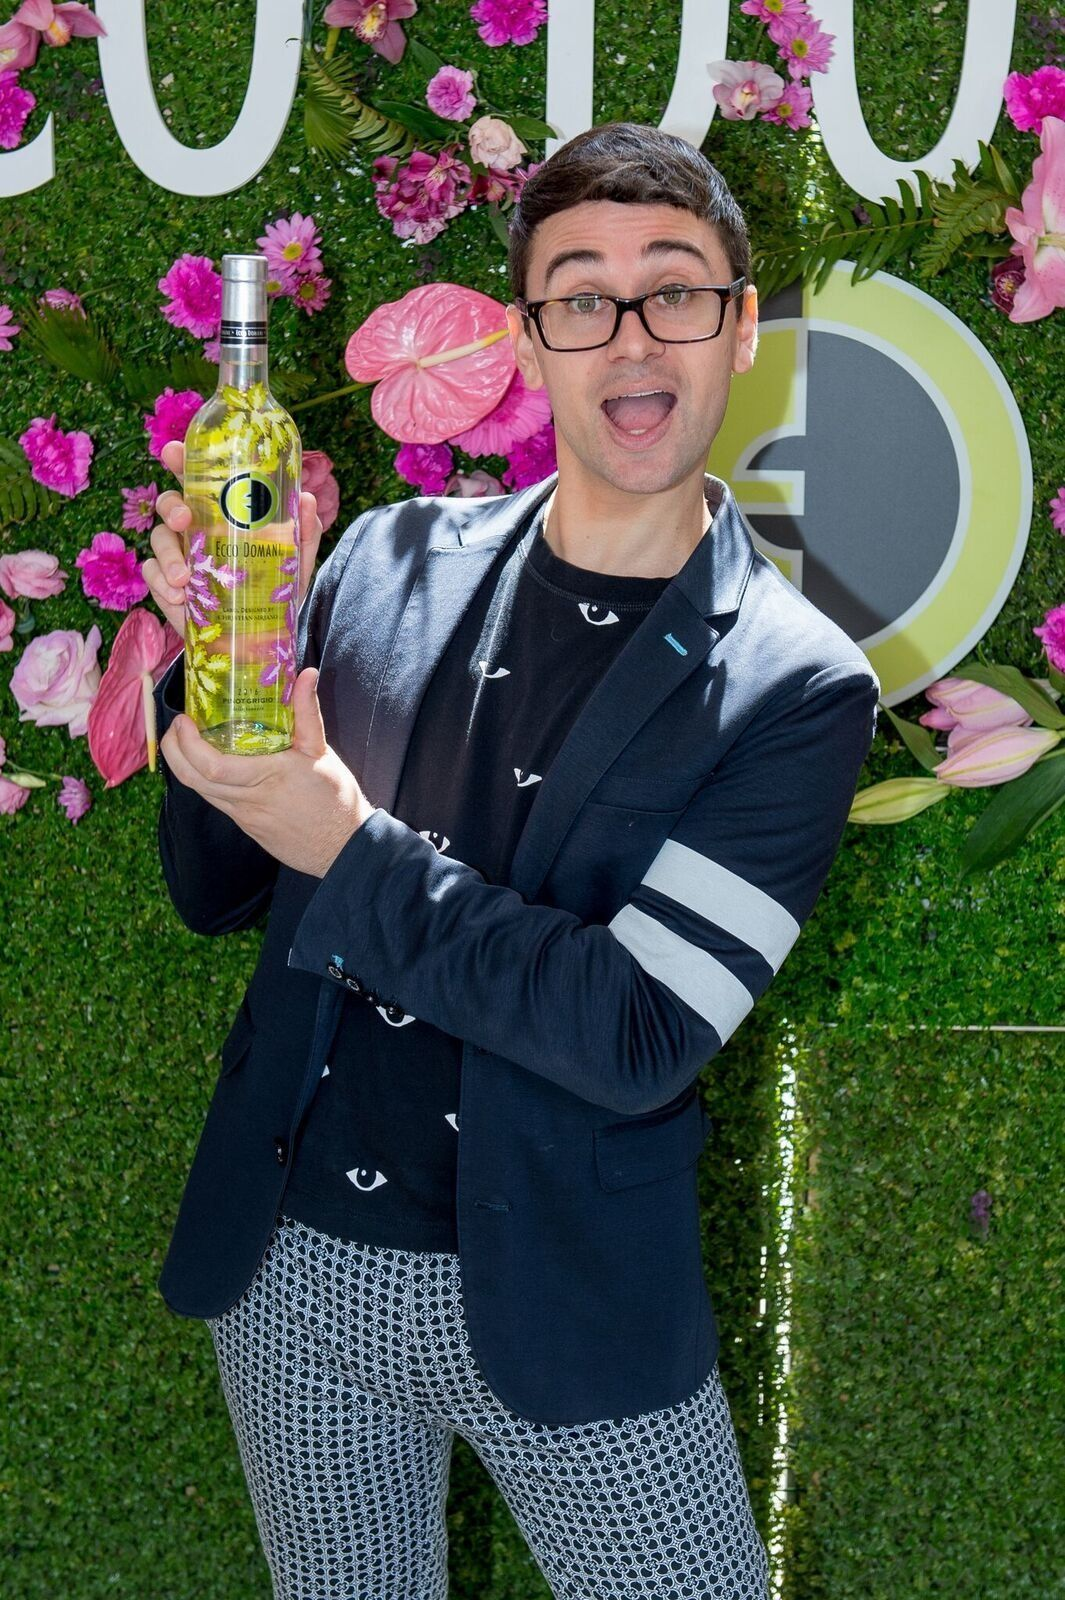 Designer Christian Siriano said his new Ecco Domani Pinot Grigio design was inspired by Palm Springs in the 1960s.